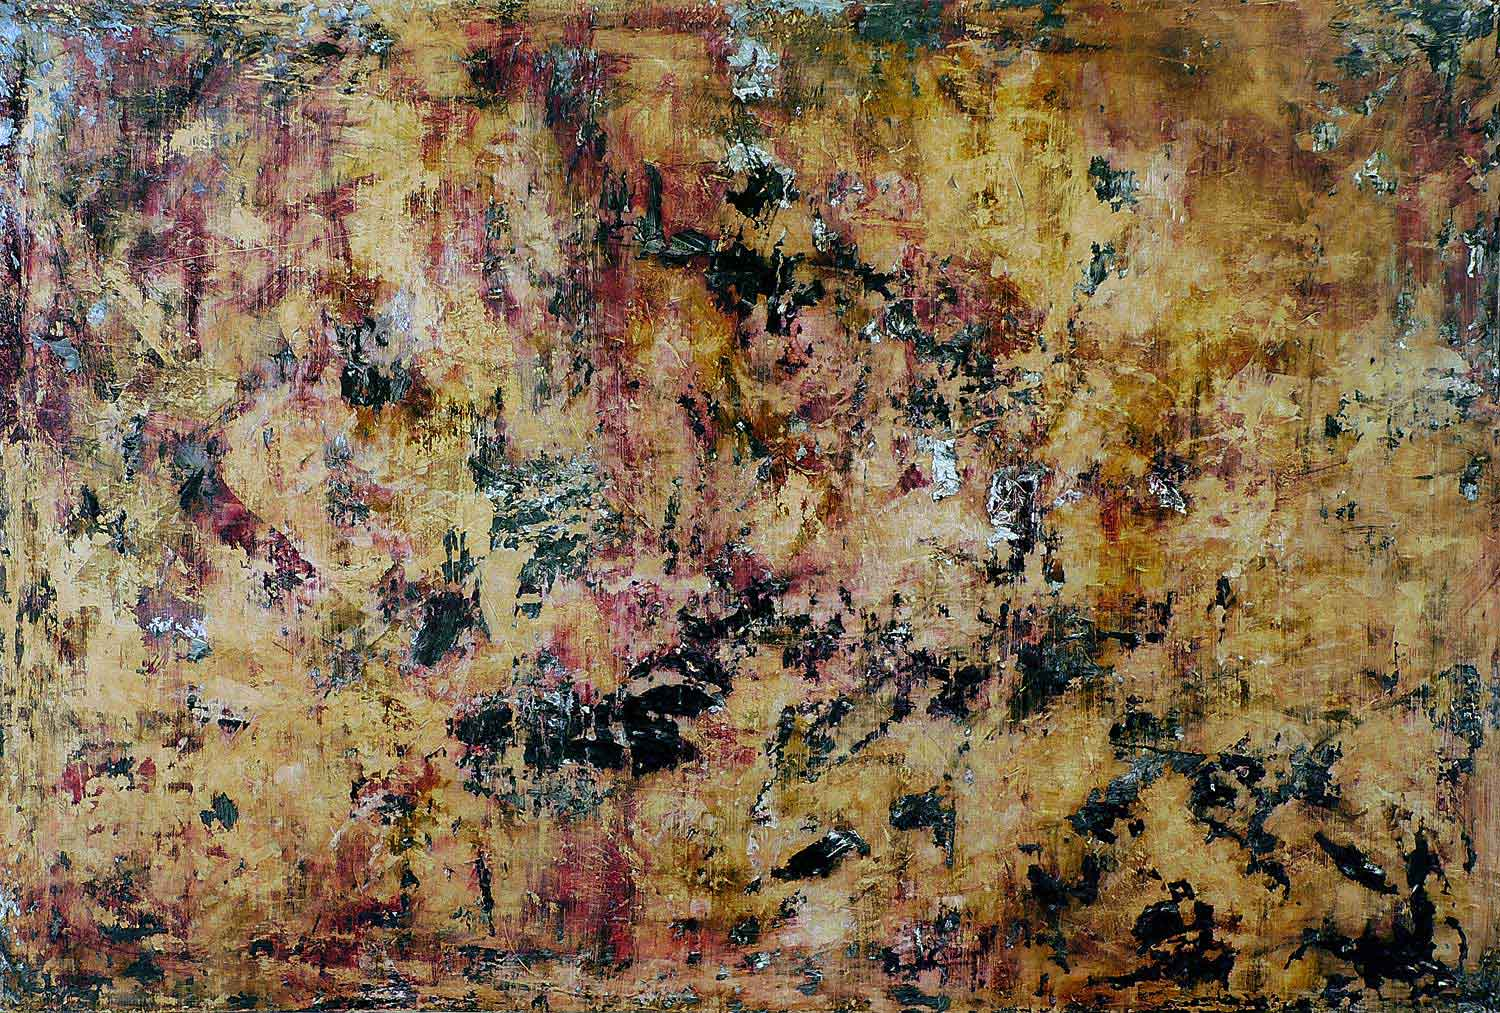 you´ve changed - 100 x 150 cm - acryllic on canvas - 2008